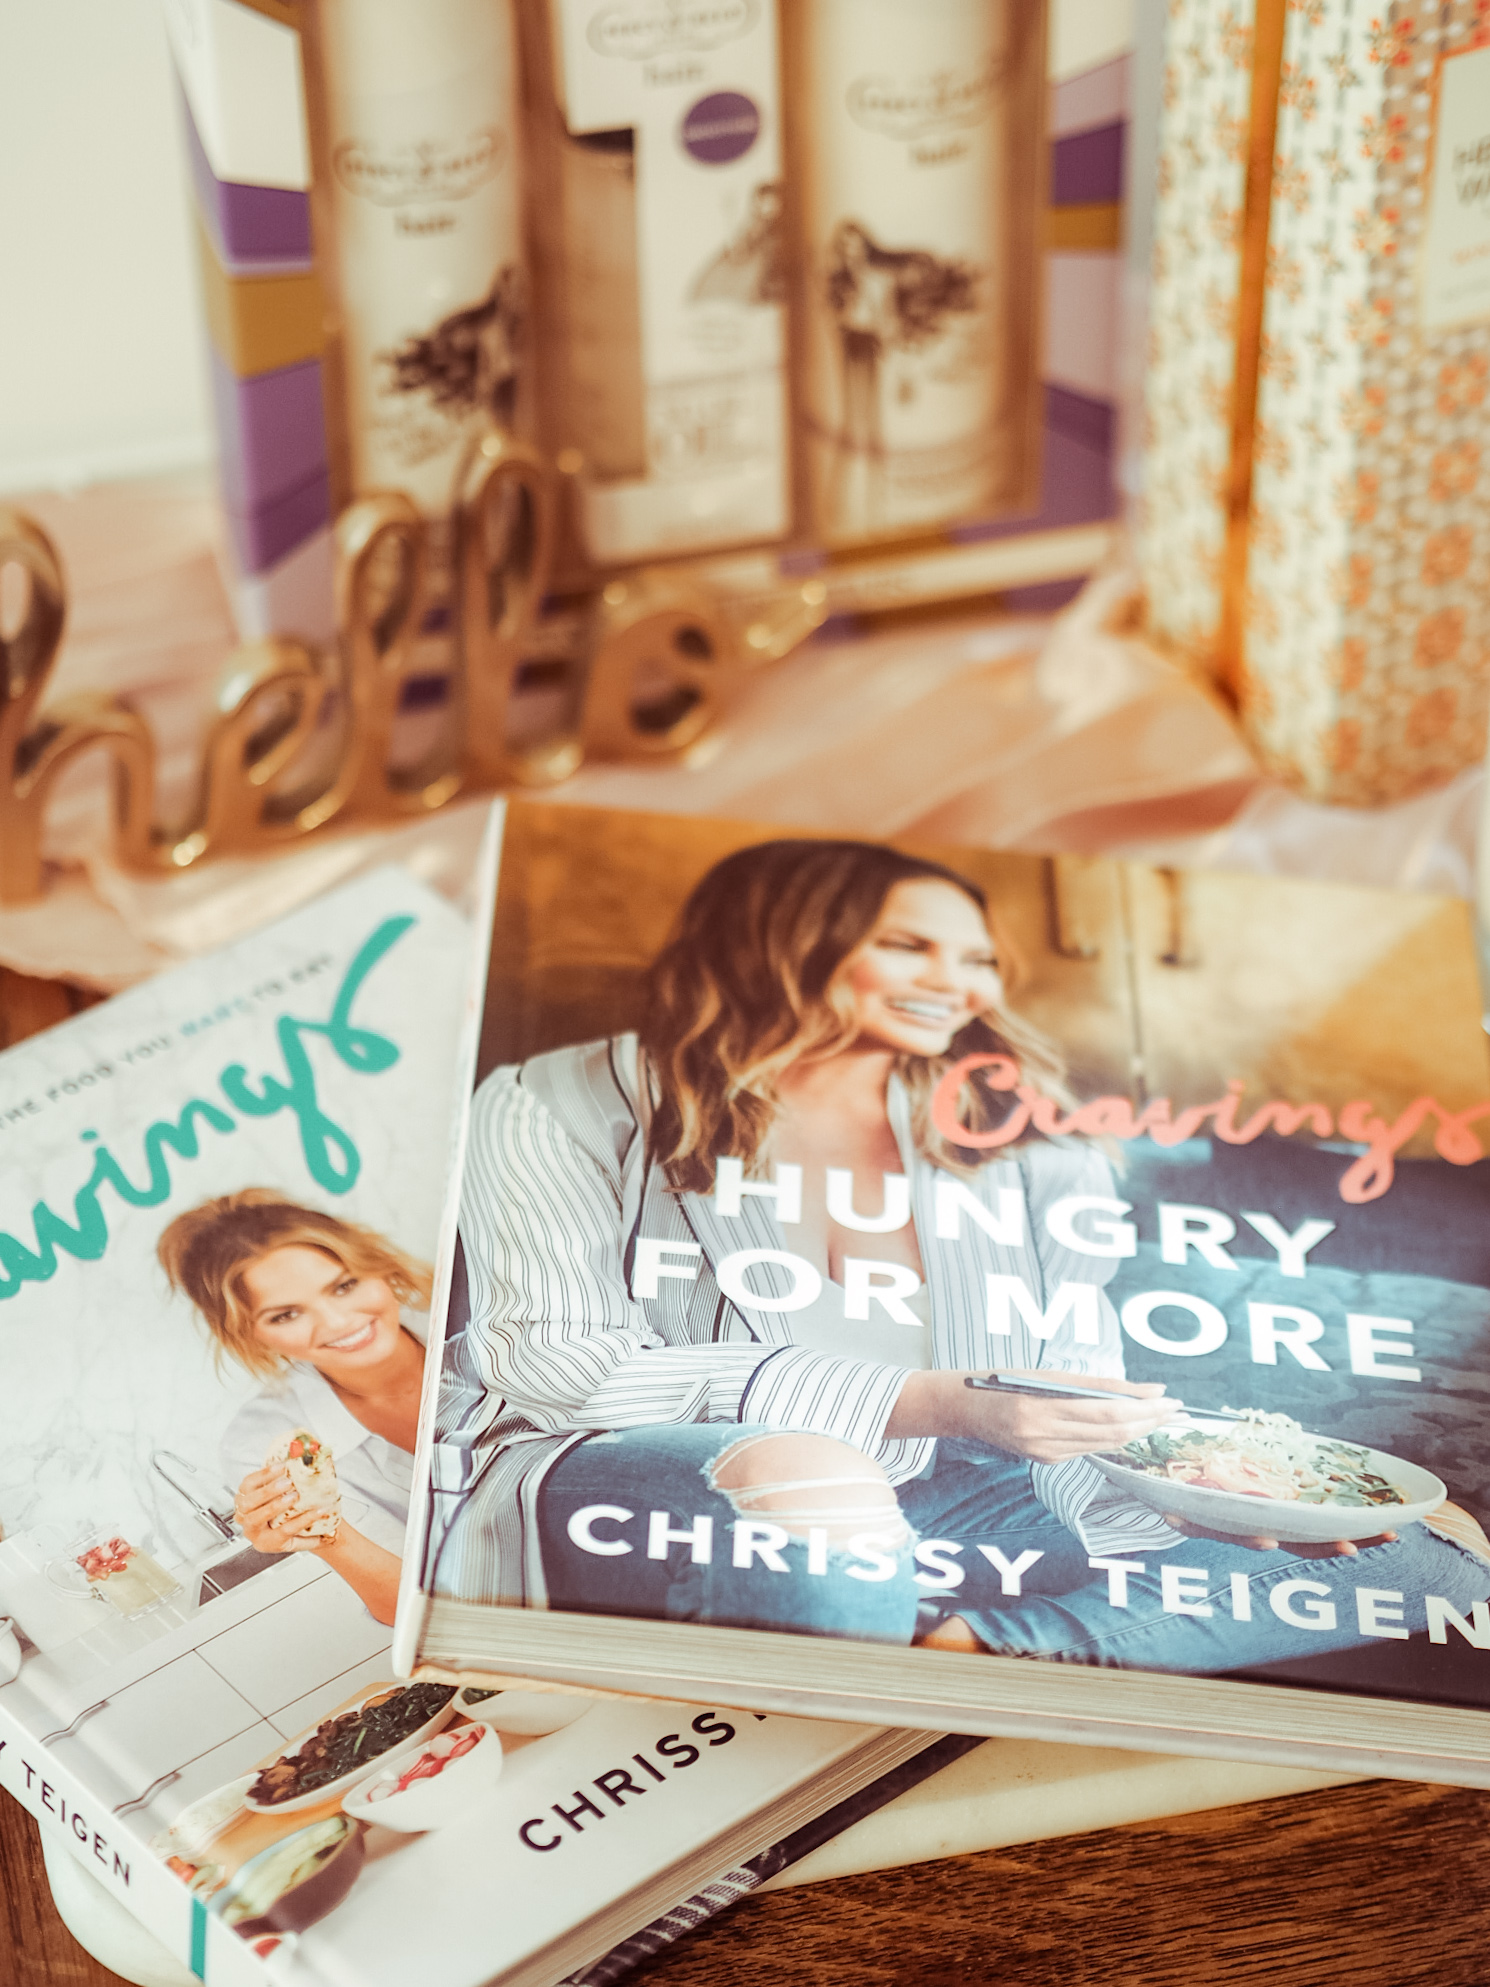 Chrissy Teigen Cravings and Hungry for more books - LemonaidLies